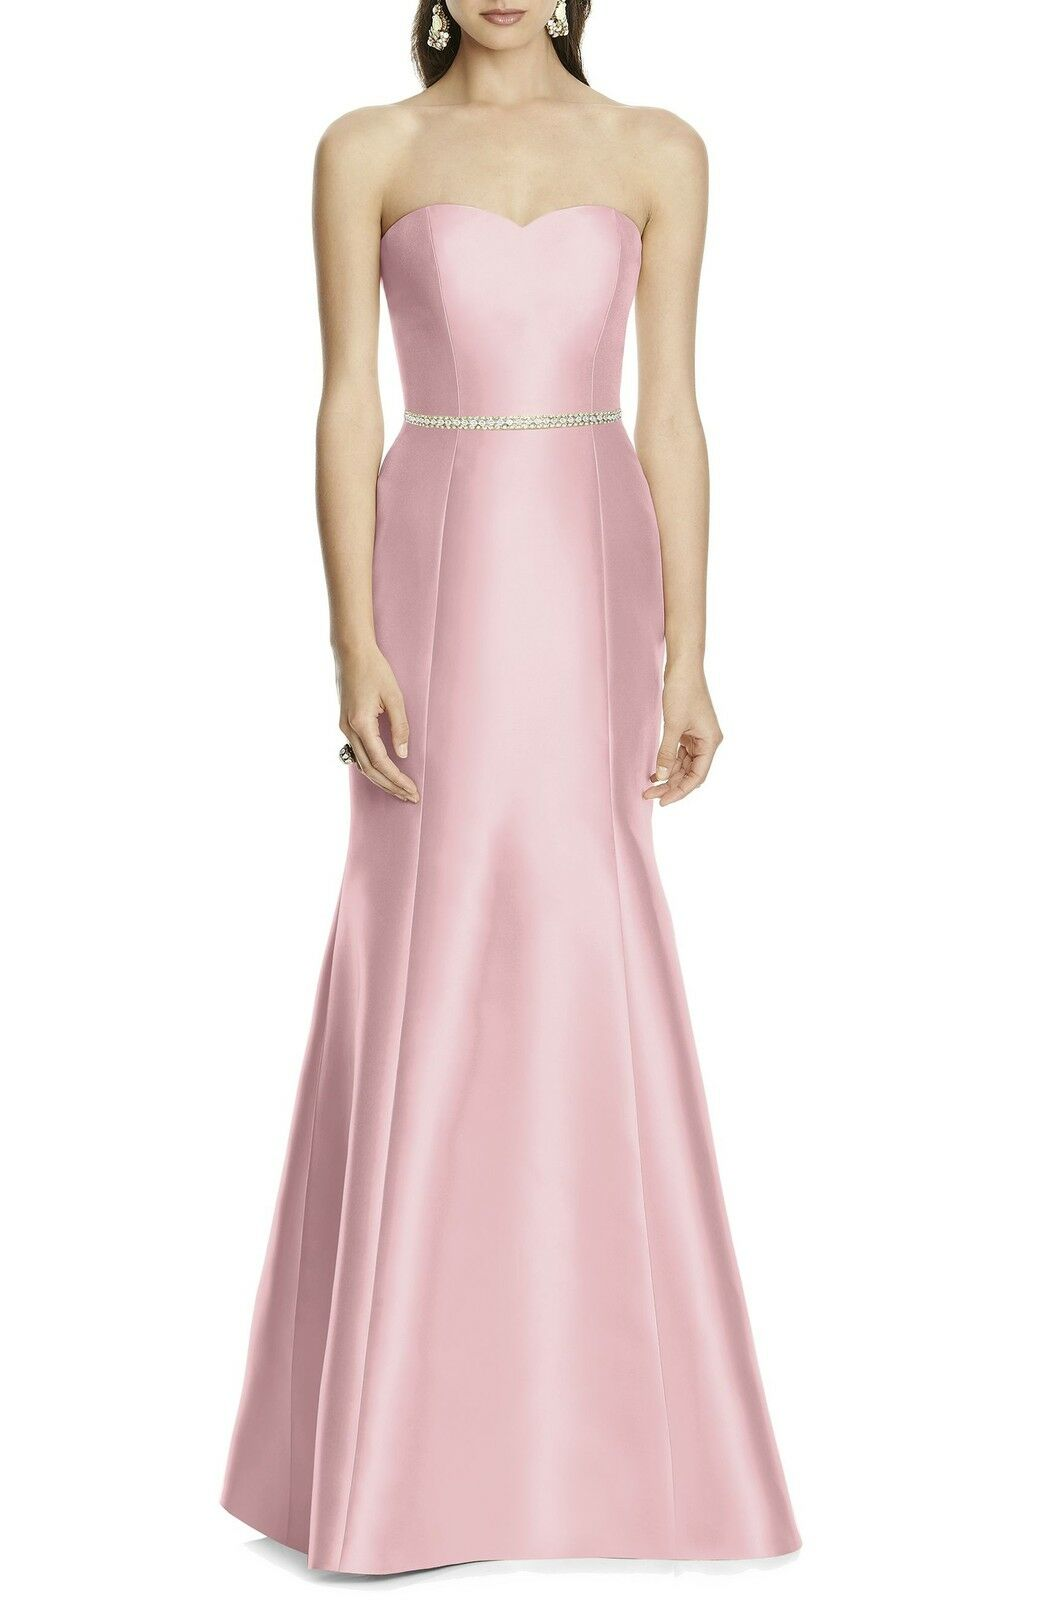 NEW ALFRED SUNG Strapless Sateen Trumpet Trumpet Trumpet MERMAID DRESS GOWN Size 4  220 BLOSSOM aa128a